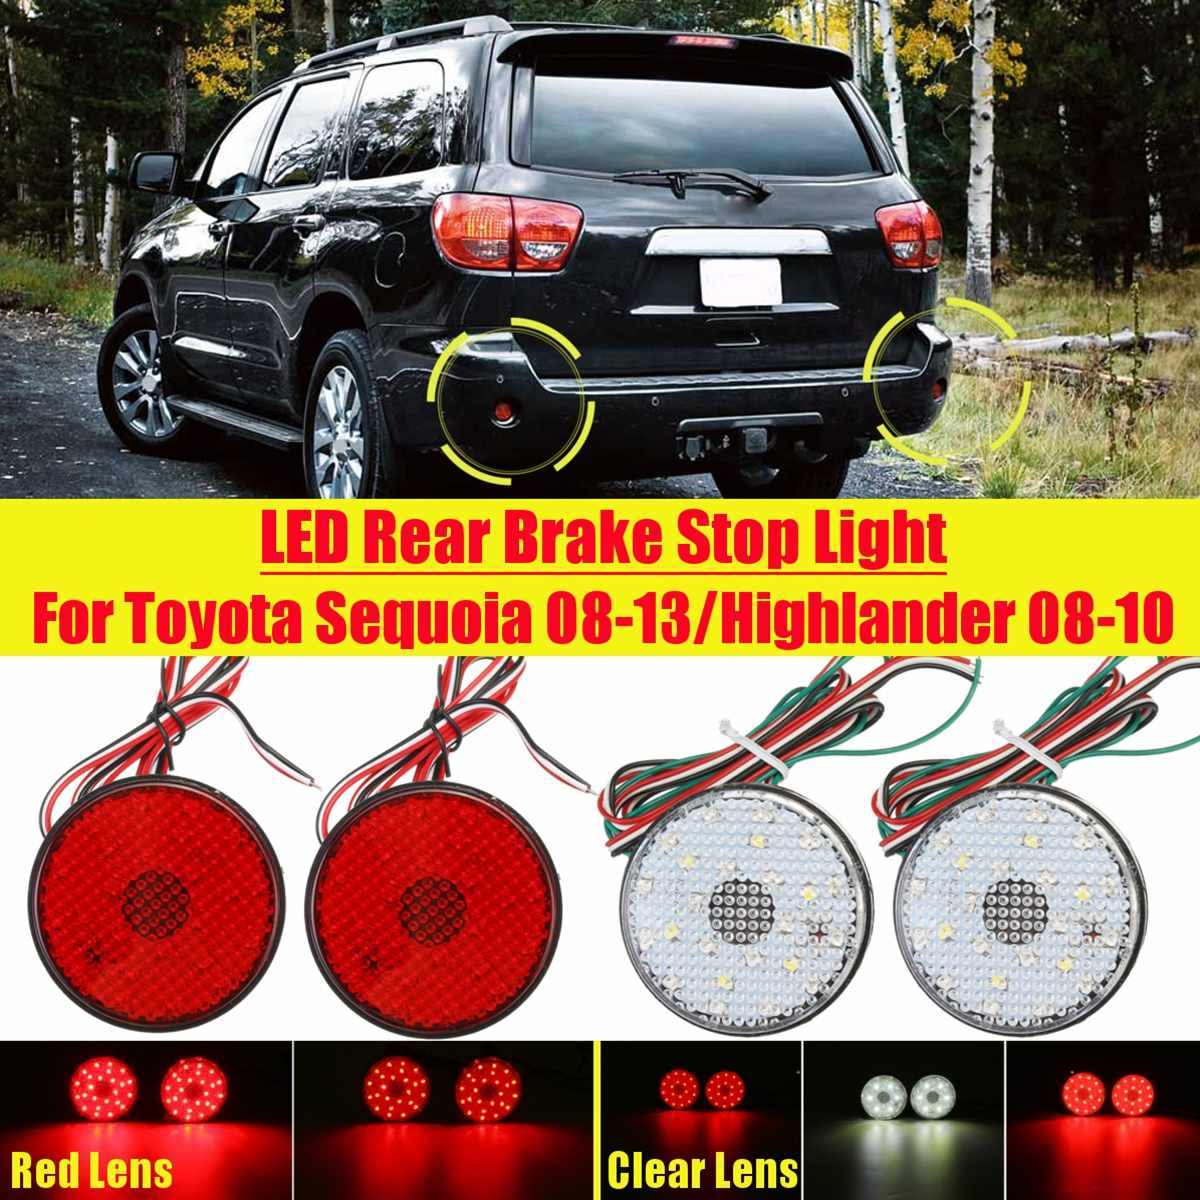 2 X Auto 21SMD Reflector Lamp Licht Voor Toyota Highlander Sequoia ZRR70 Noah Auto Brake Clear Red Lens Led Rear bumper Staart Stop